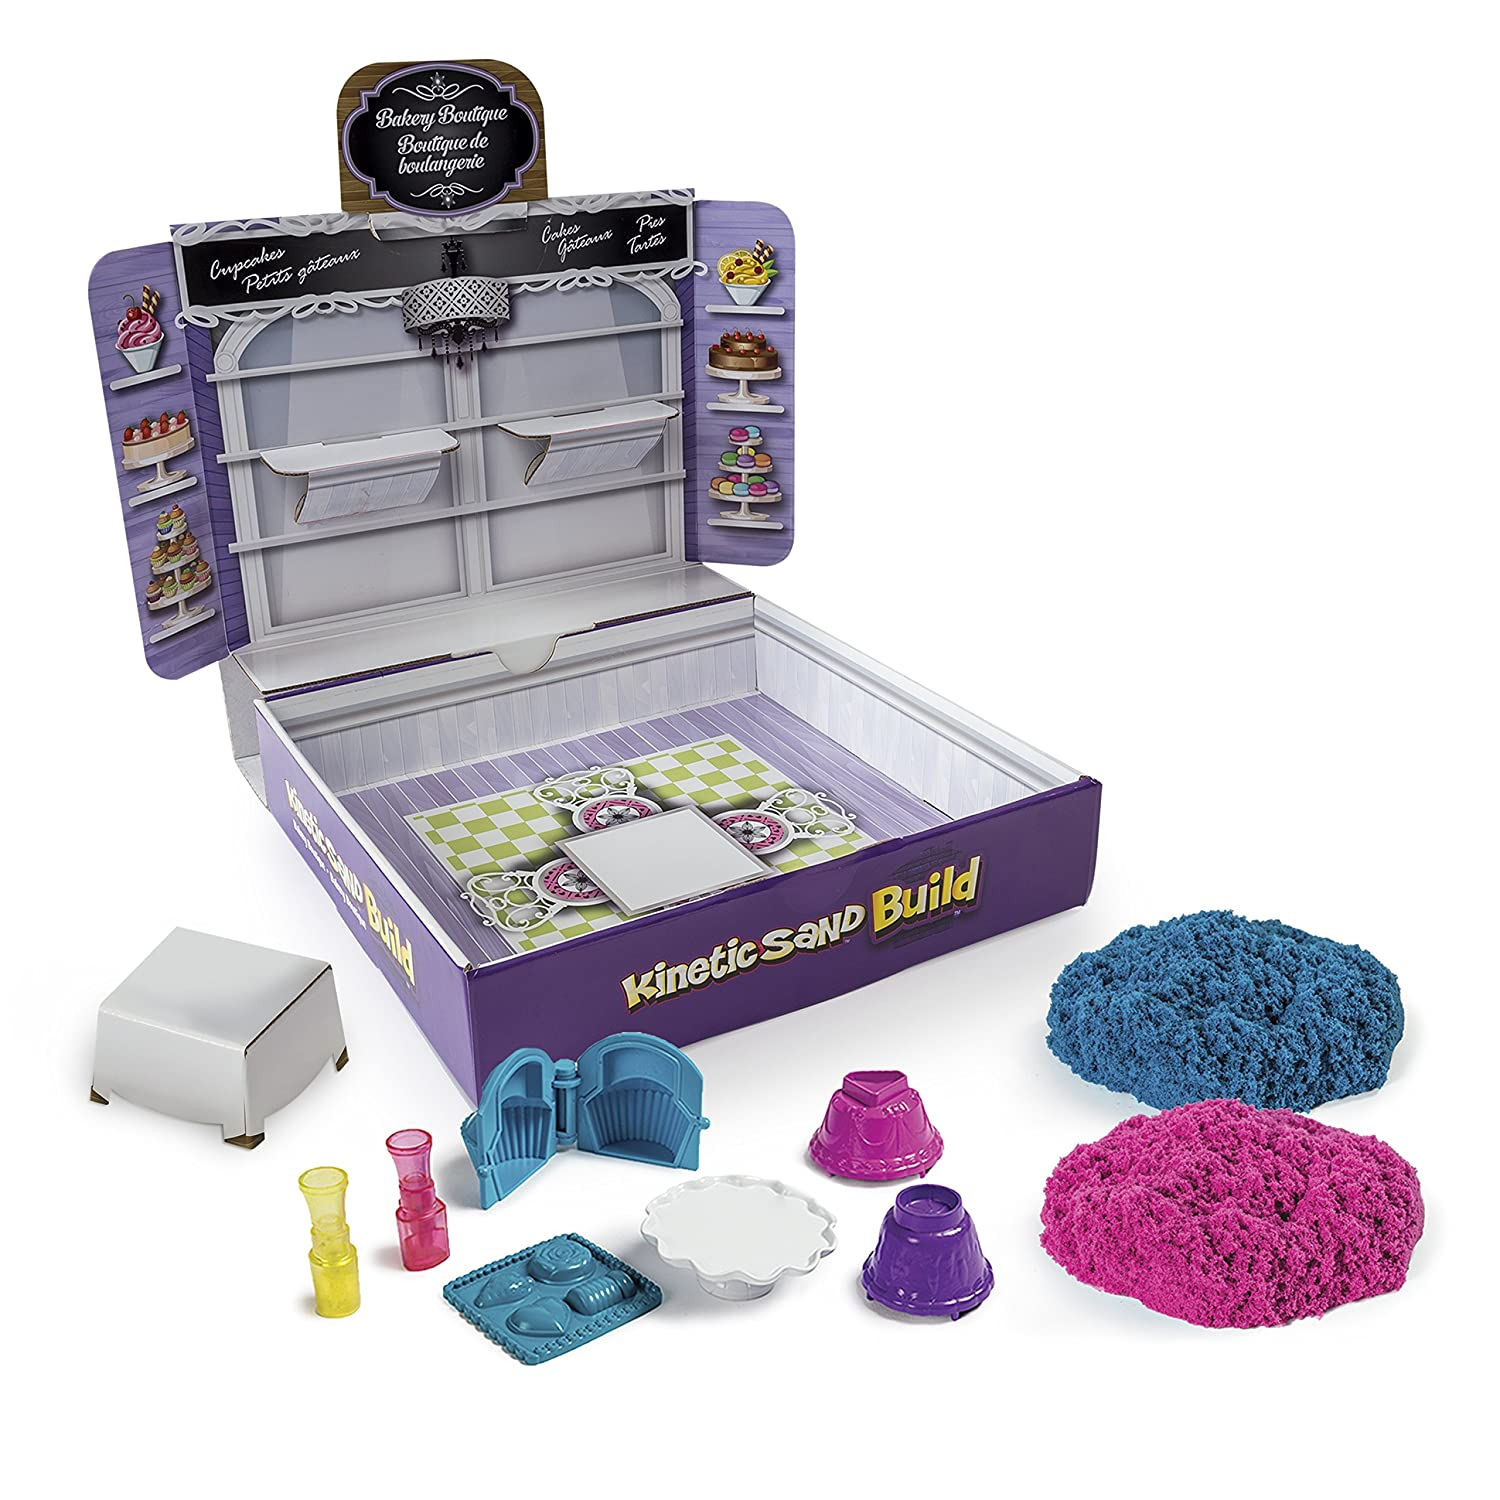 Styles Vary Bakery Boutique Kinetic Sand Build Spin Master 6027479